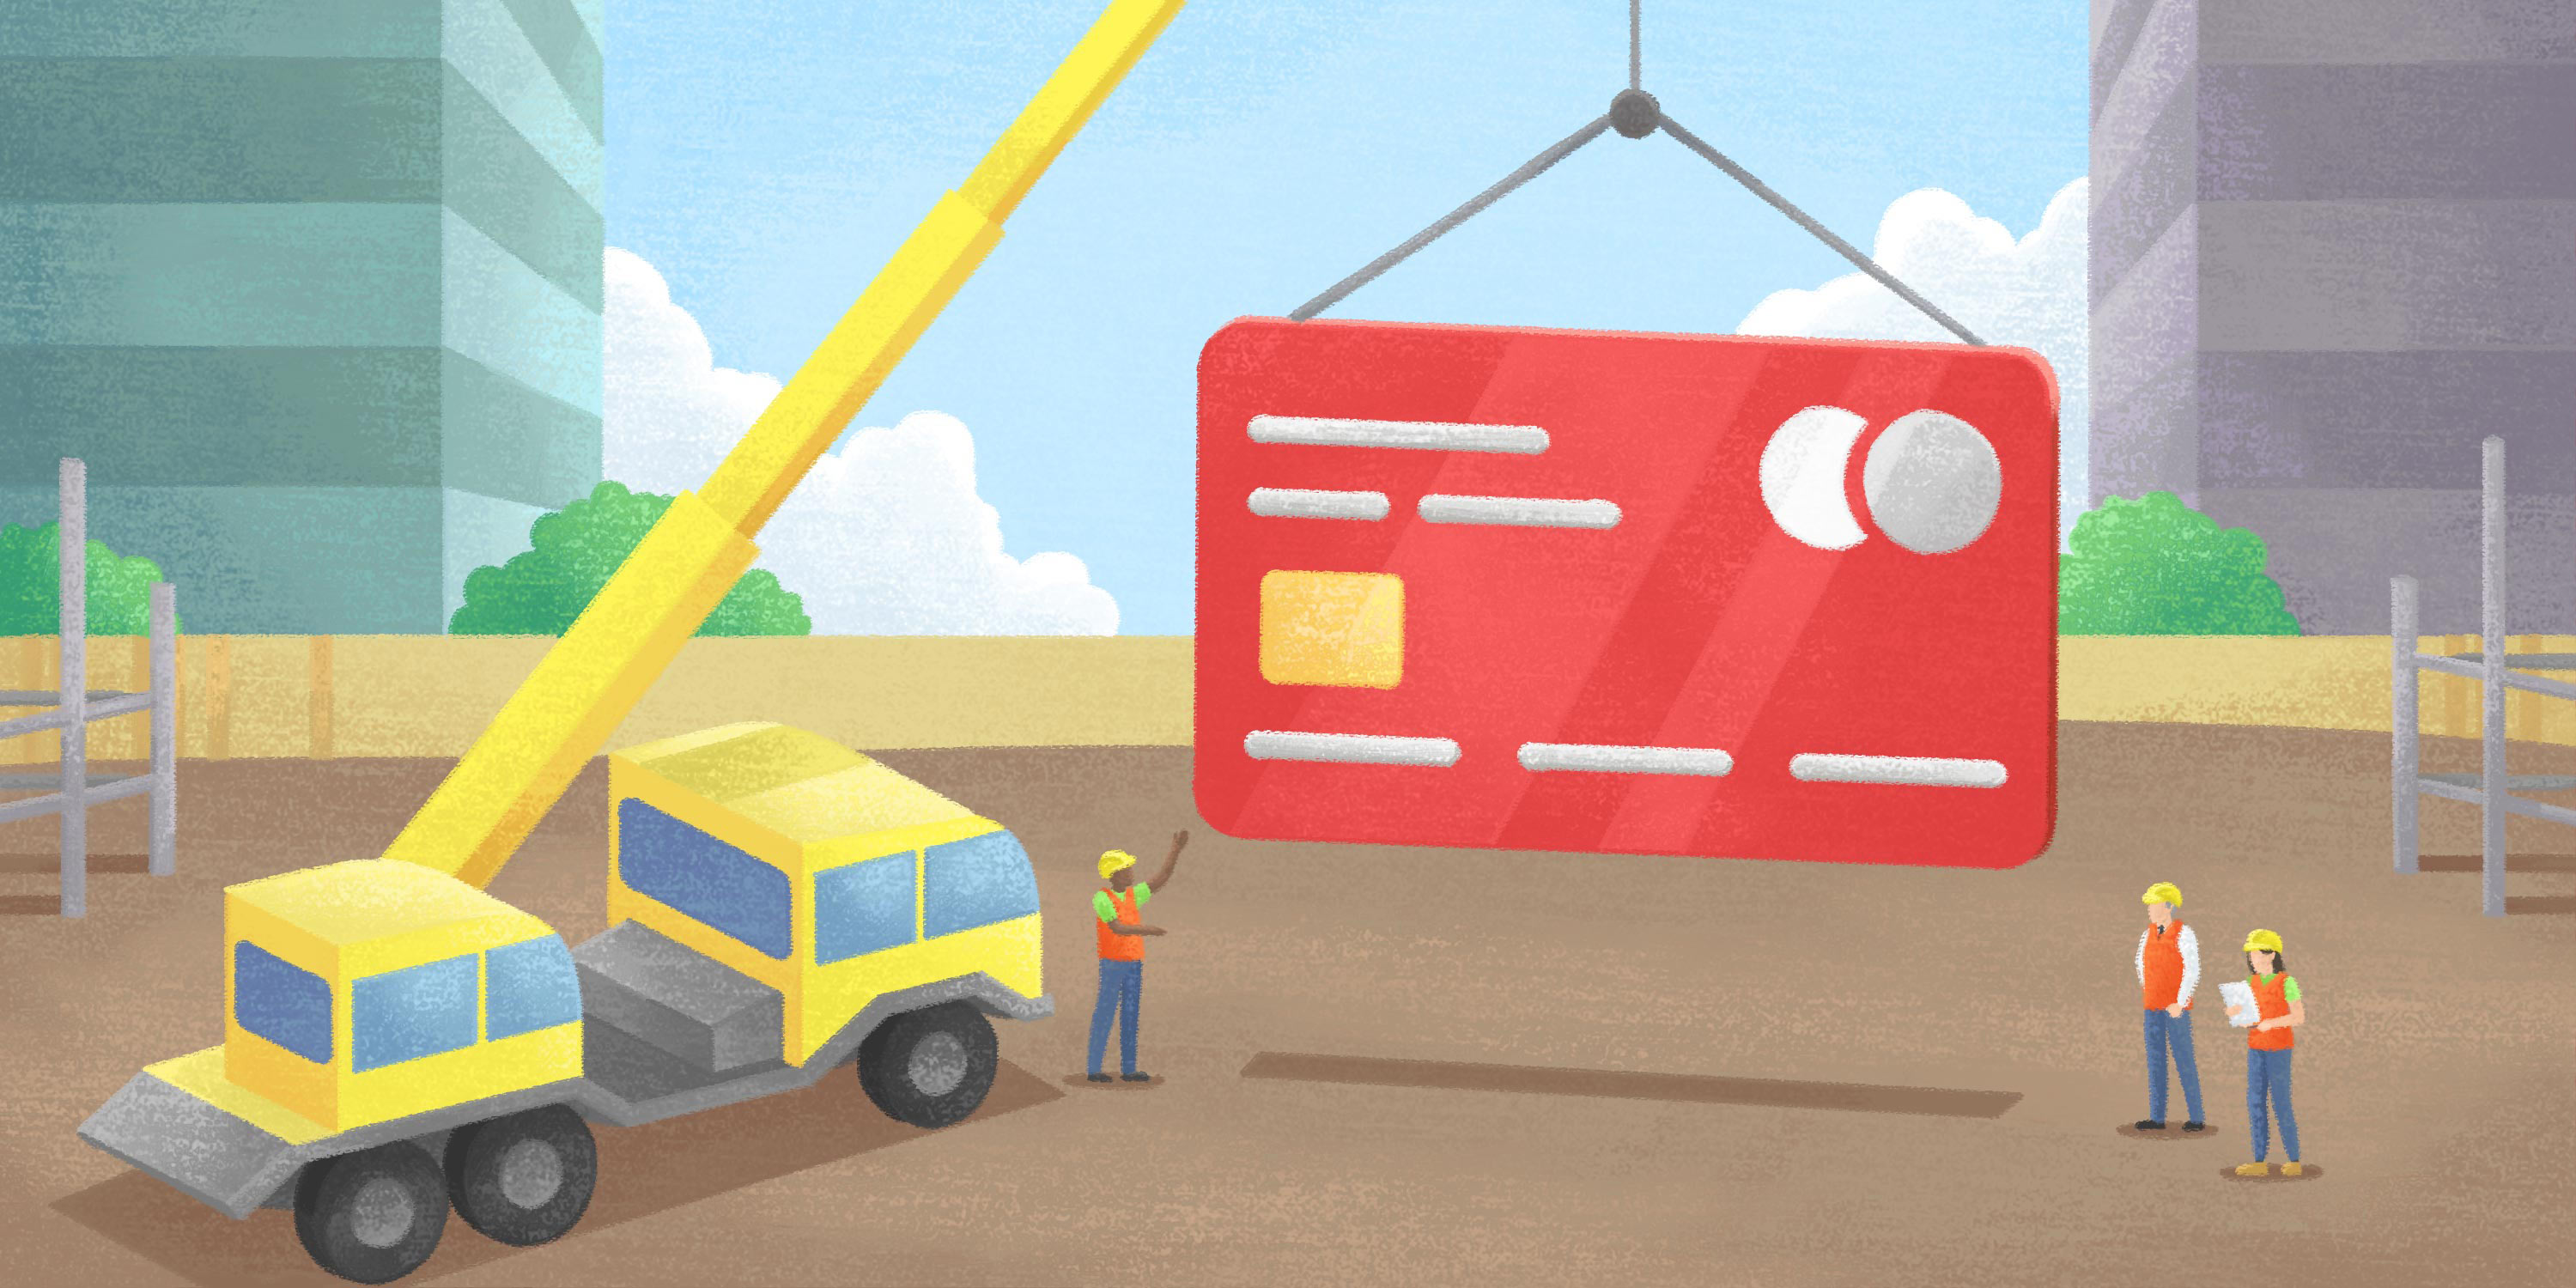 a construction crane hoists an AP payment card